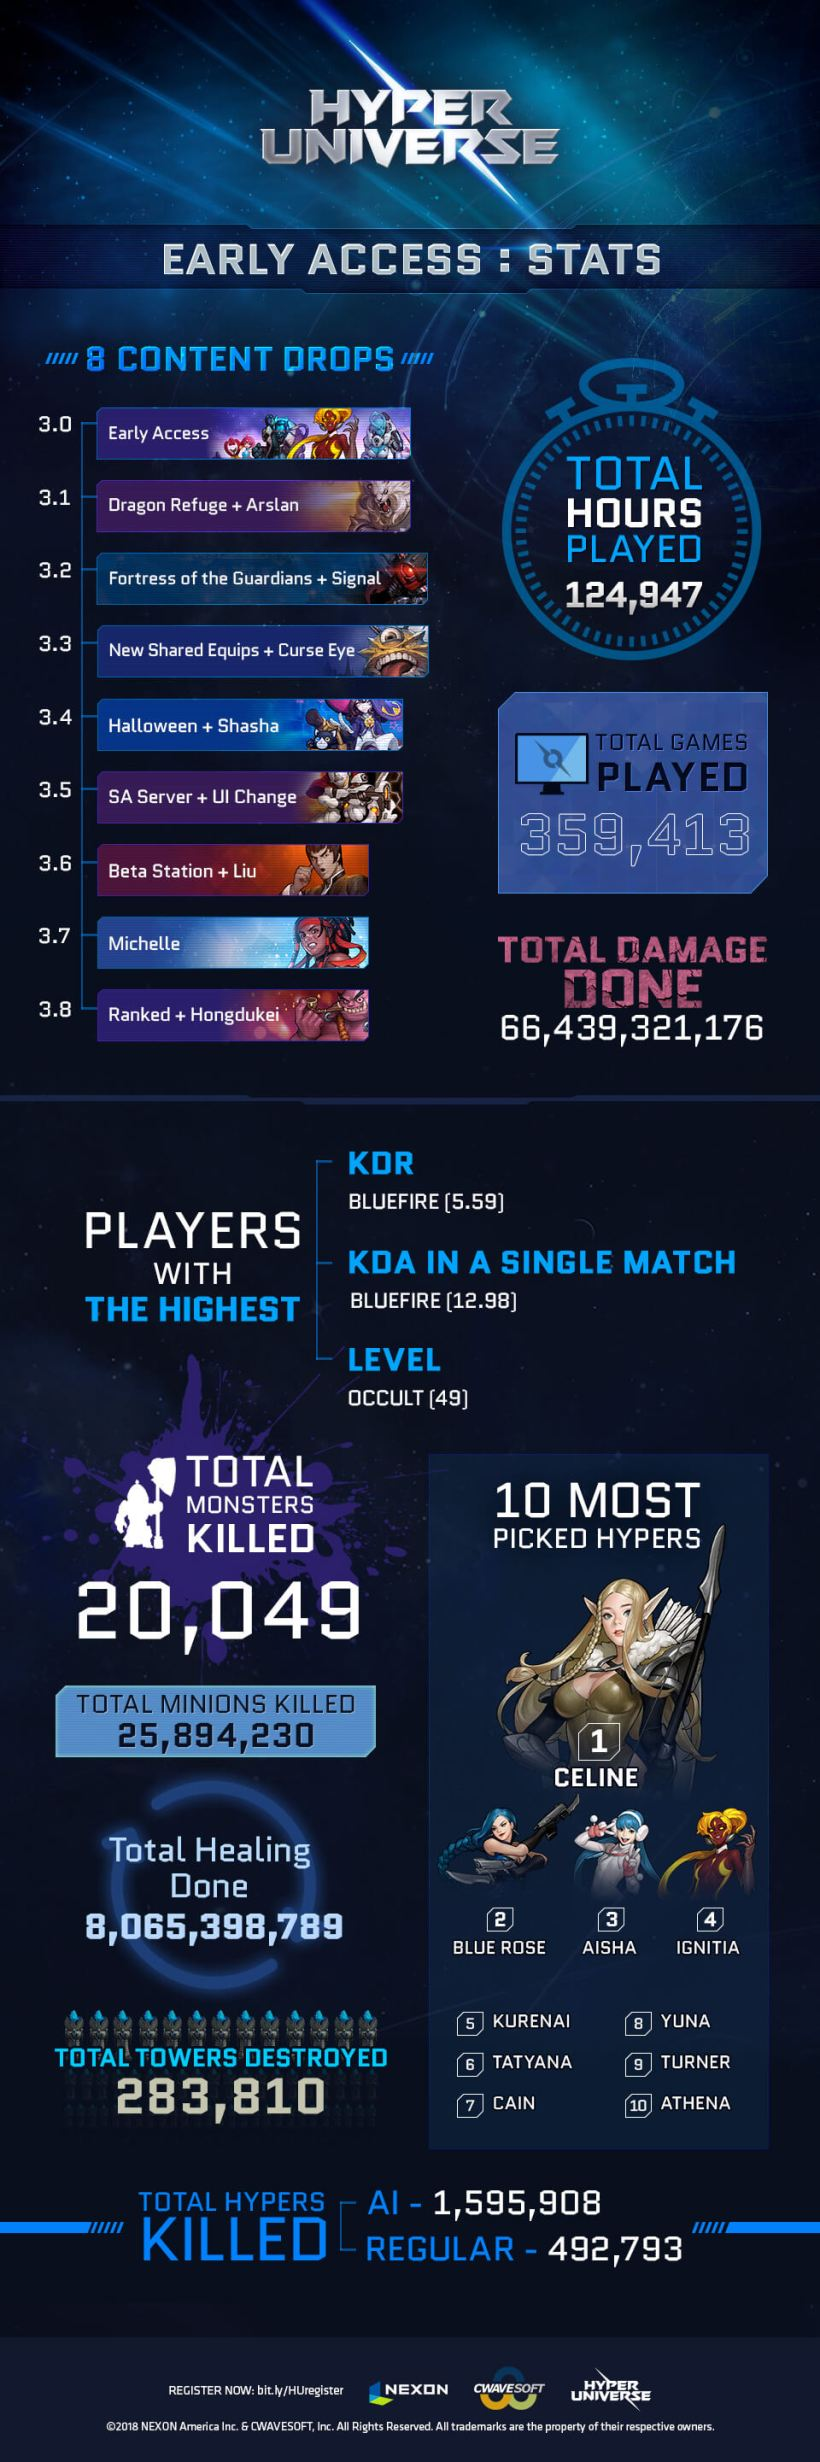 Hyper_Universe_Infographic-1